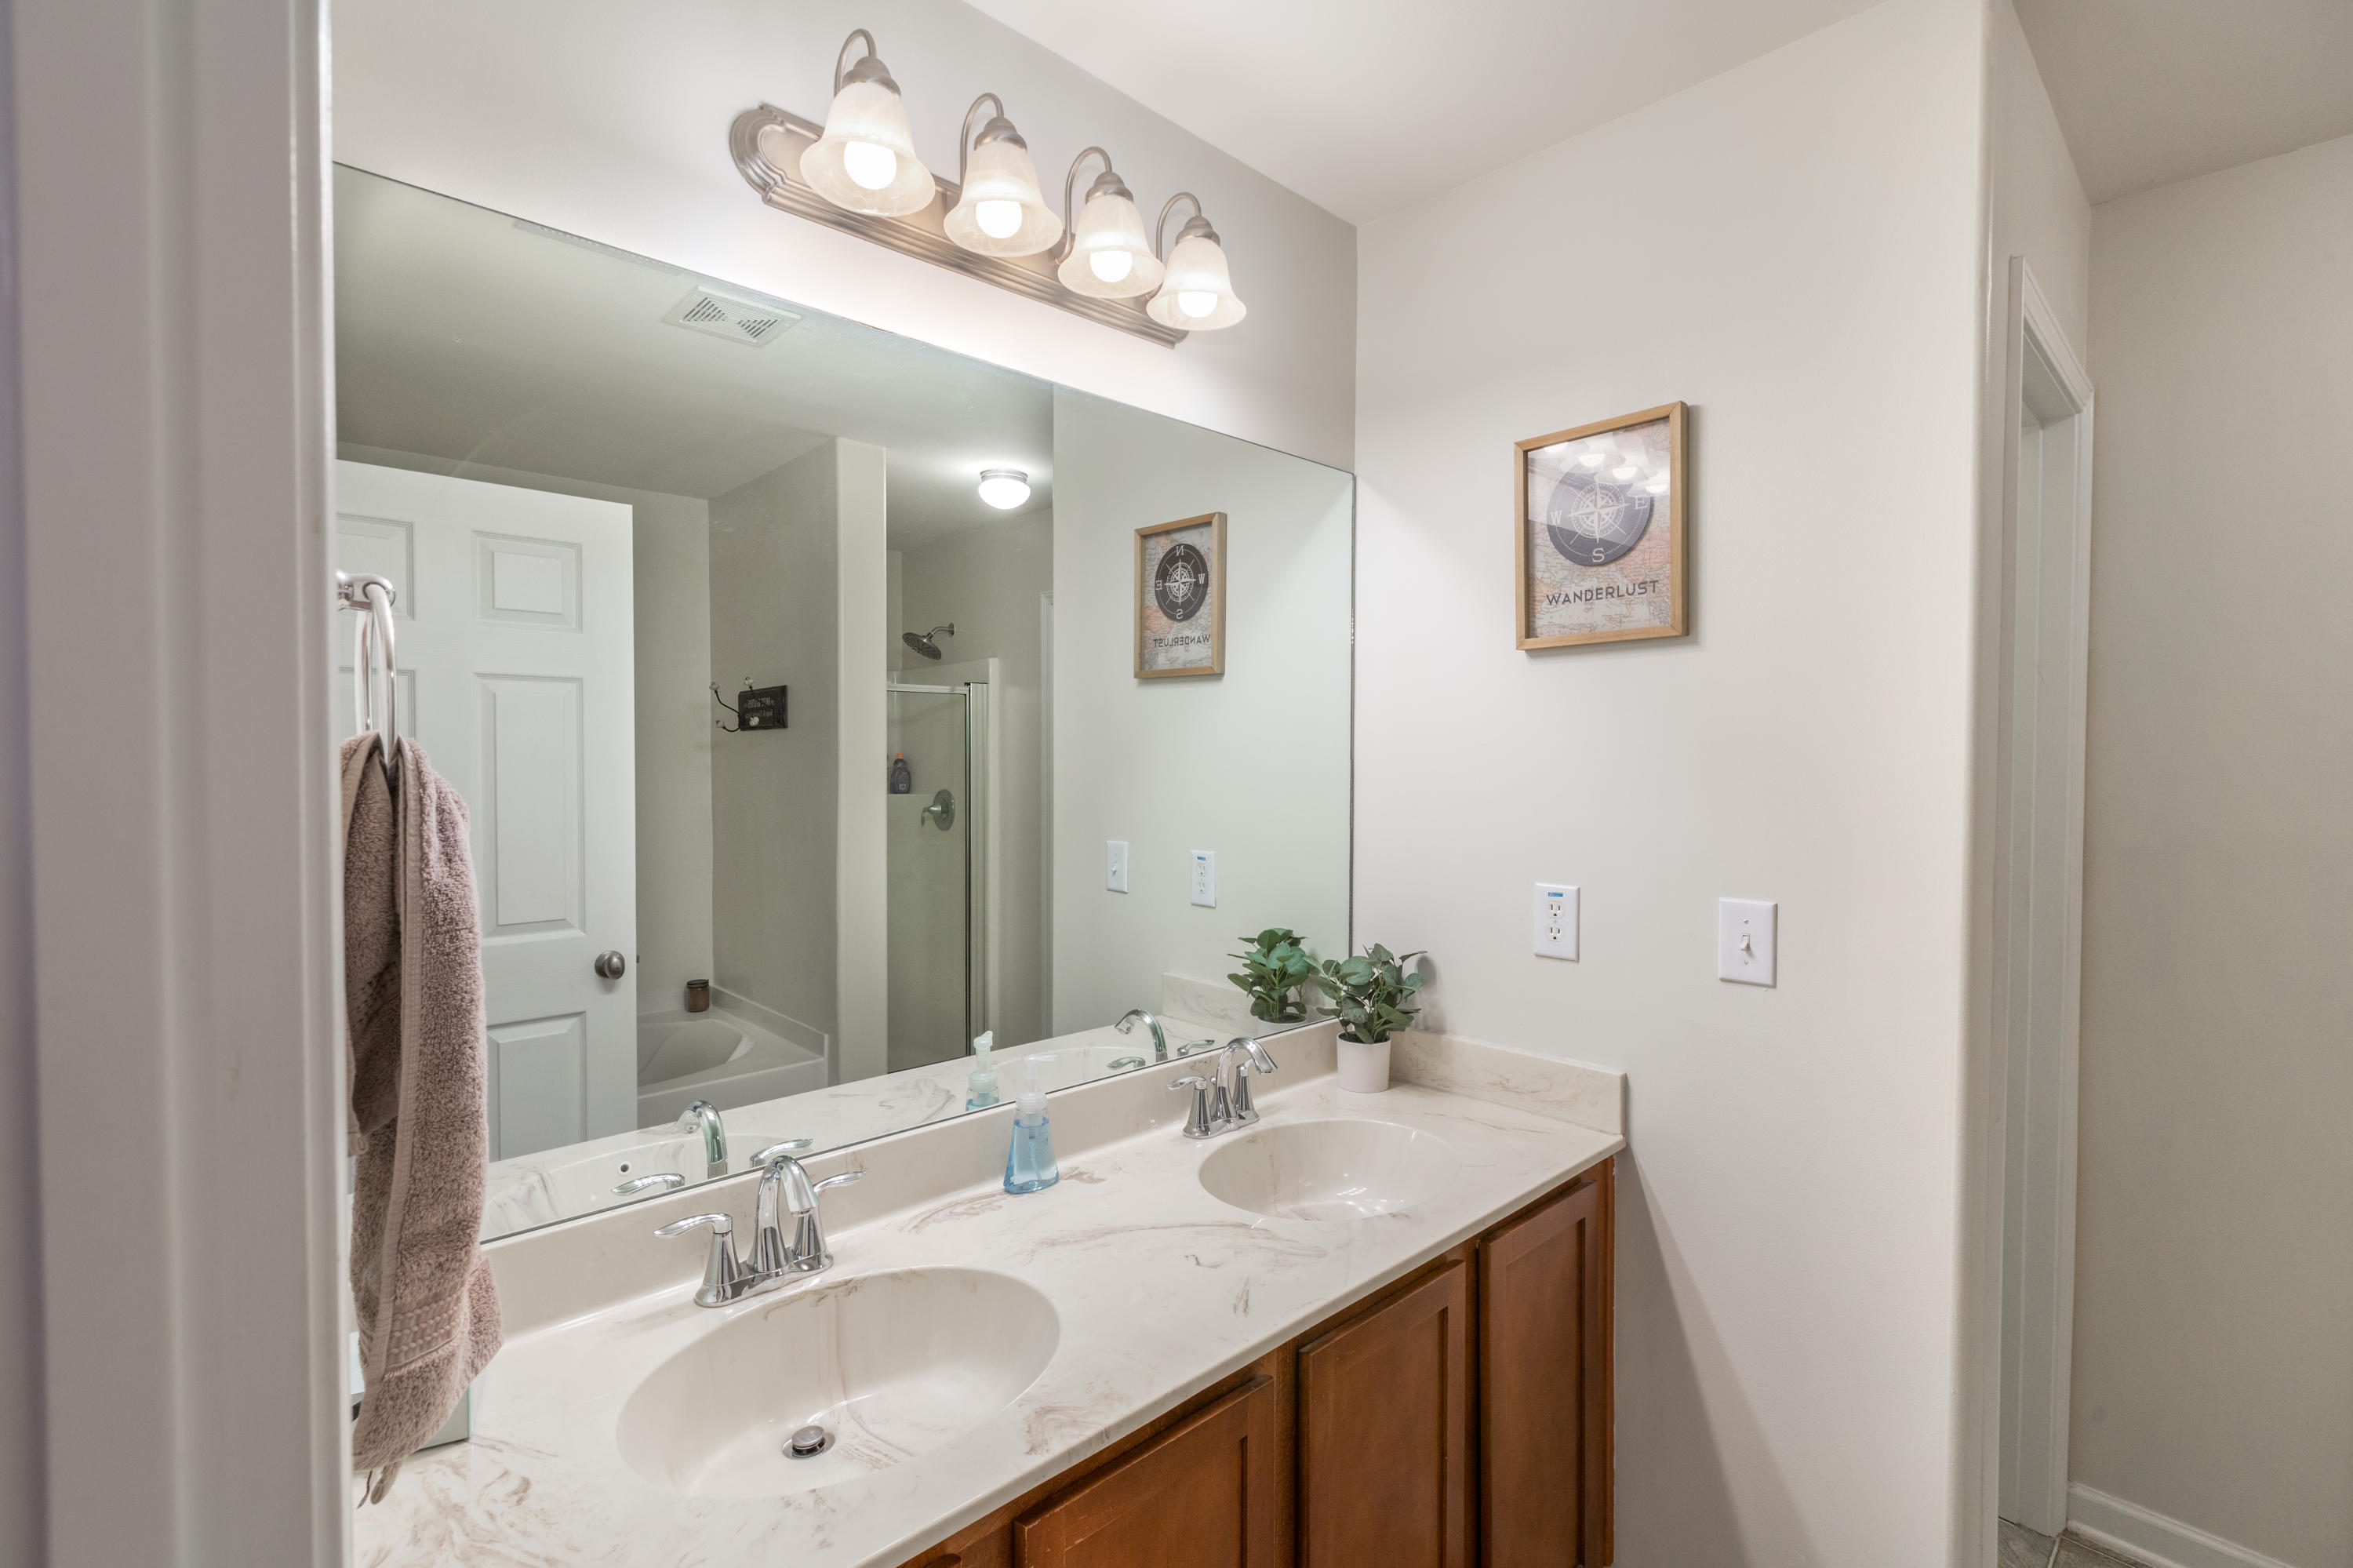 Berkeley Commons Townhomes Homes For Sale - 113 Lamplighter, Summerville, SC - 7